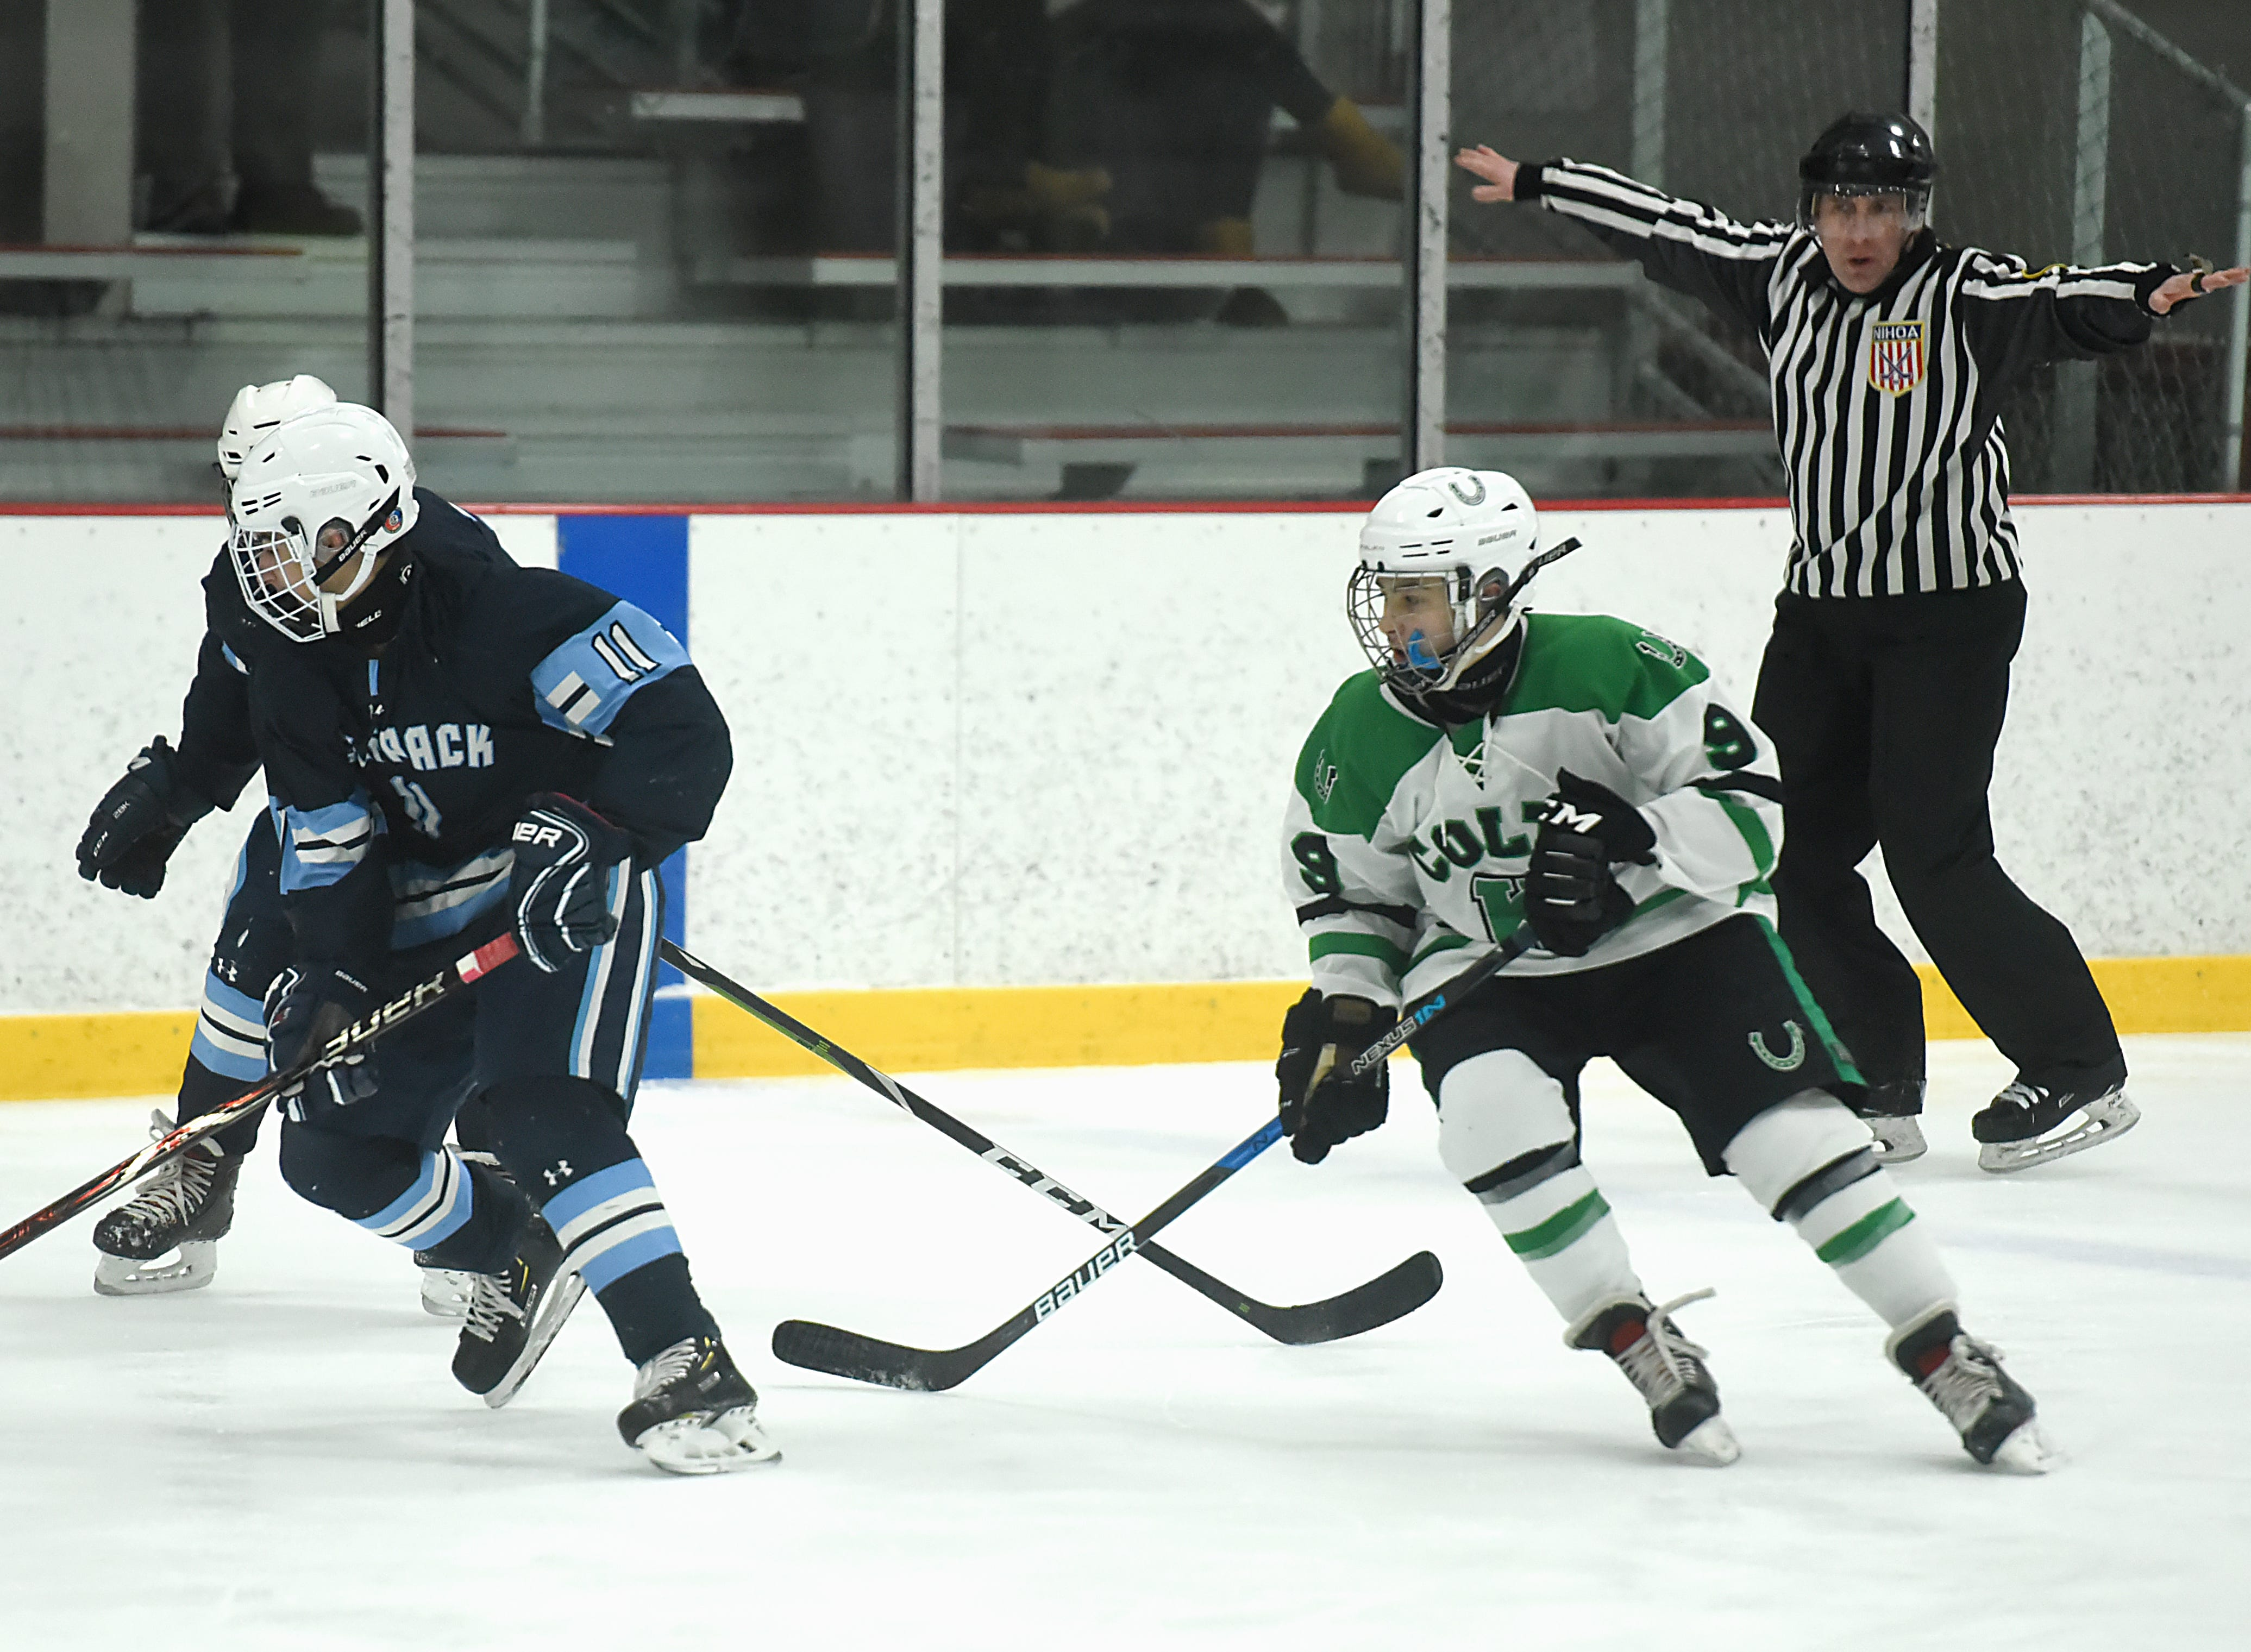 Kinnelon vs. West Morris hockey game at Skylands Ice World in Stockholm on Friday January 11, 2019. (From left) WM#11 Max Michalski and K#9 Joey Arnold.